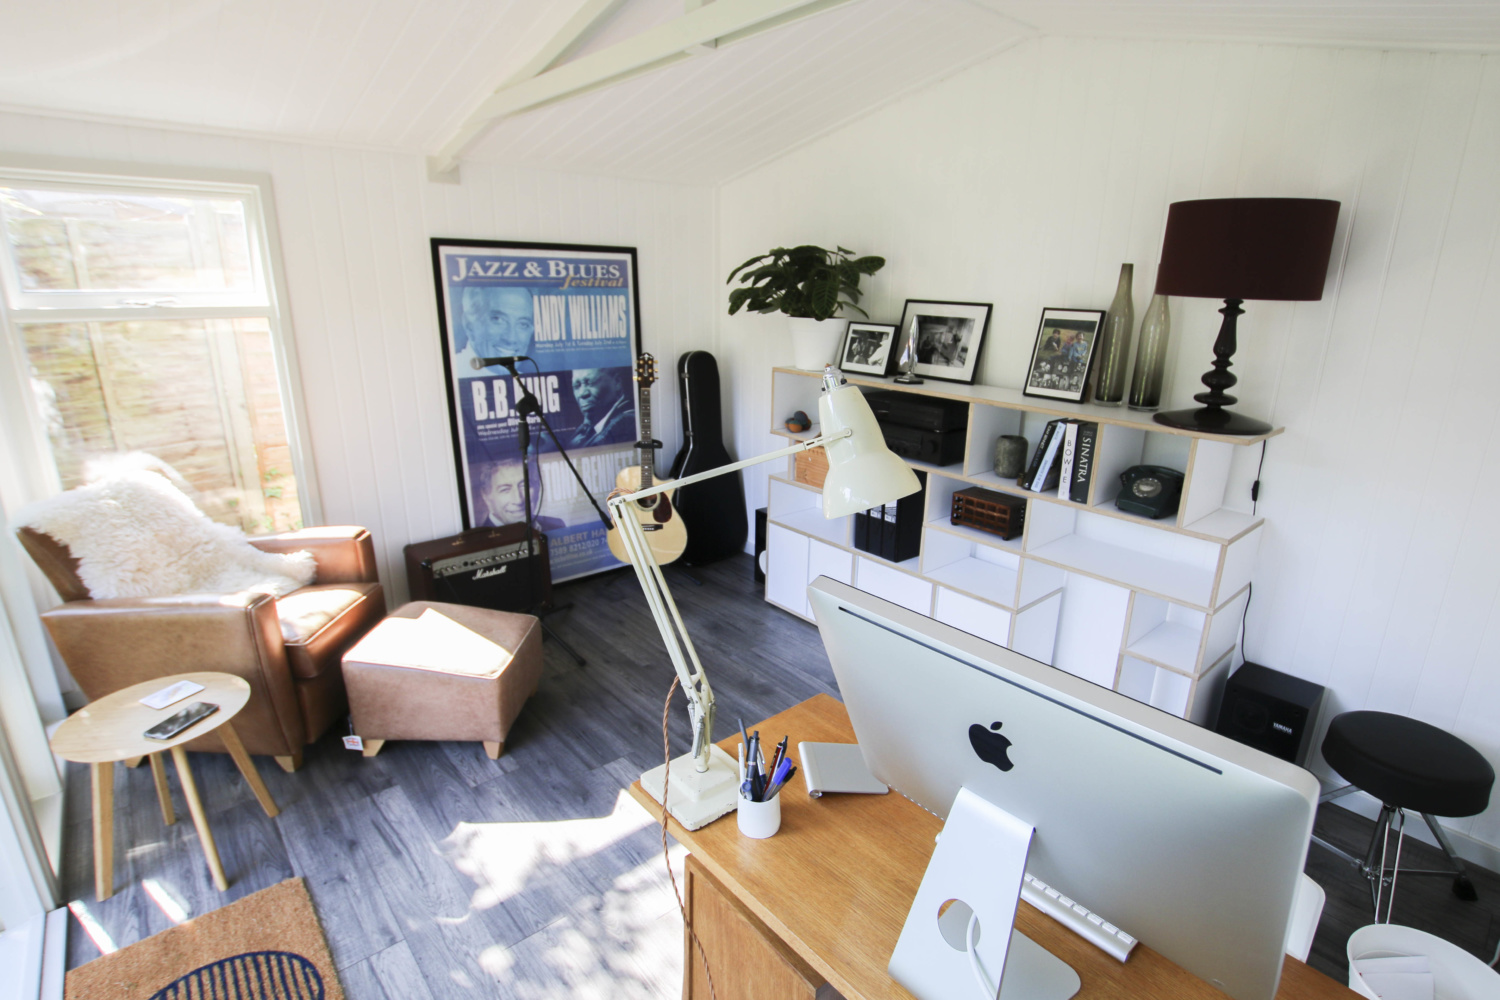 Oliver Darley uses his garden Studio as a Music Room. Read more about this chic Studio Apex by Malvern Garden Buildings